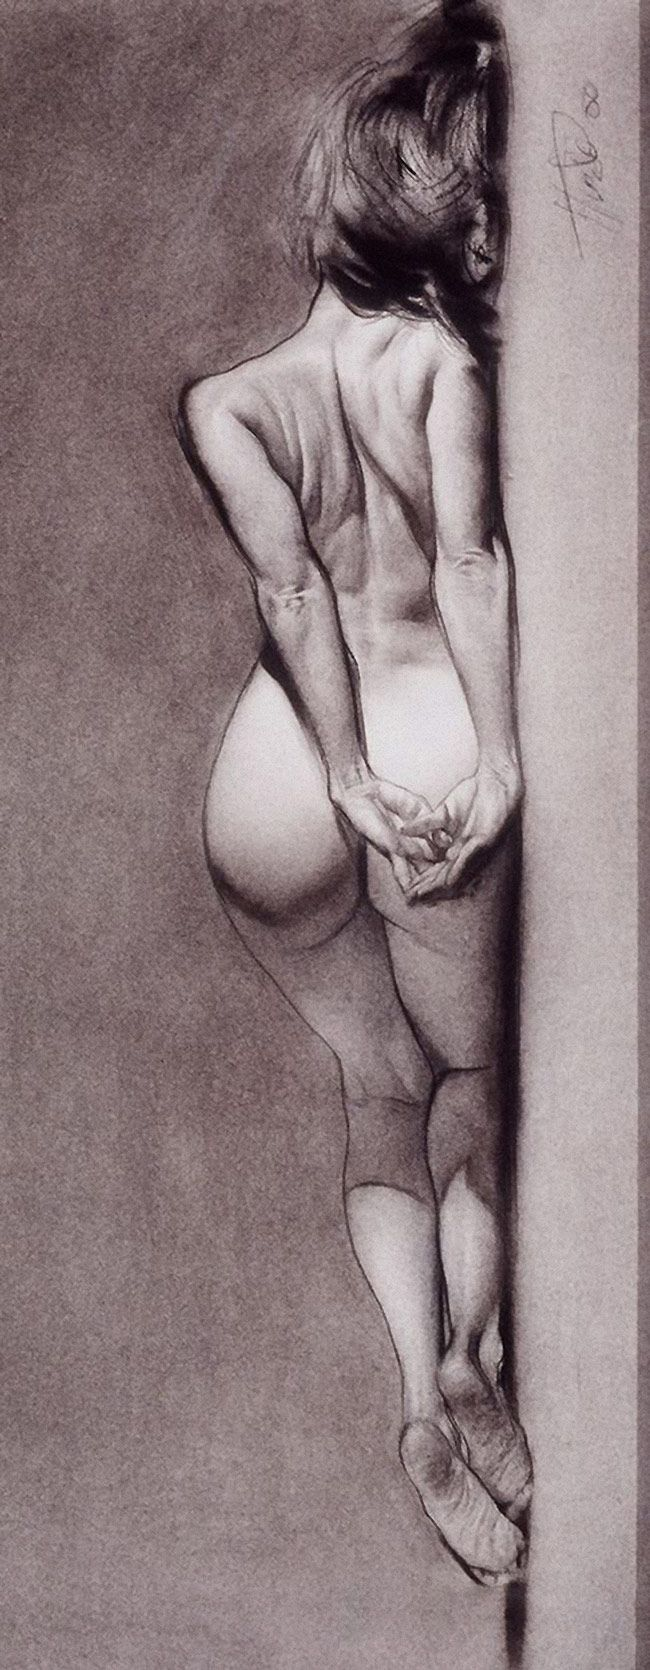 Contemporary figurative artist Steve Huston, discreet nude woman posterior back reclining charcoal figure drawing rotated, 2000. Good model pose. <3